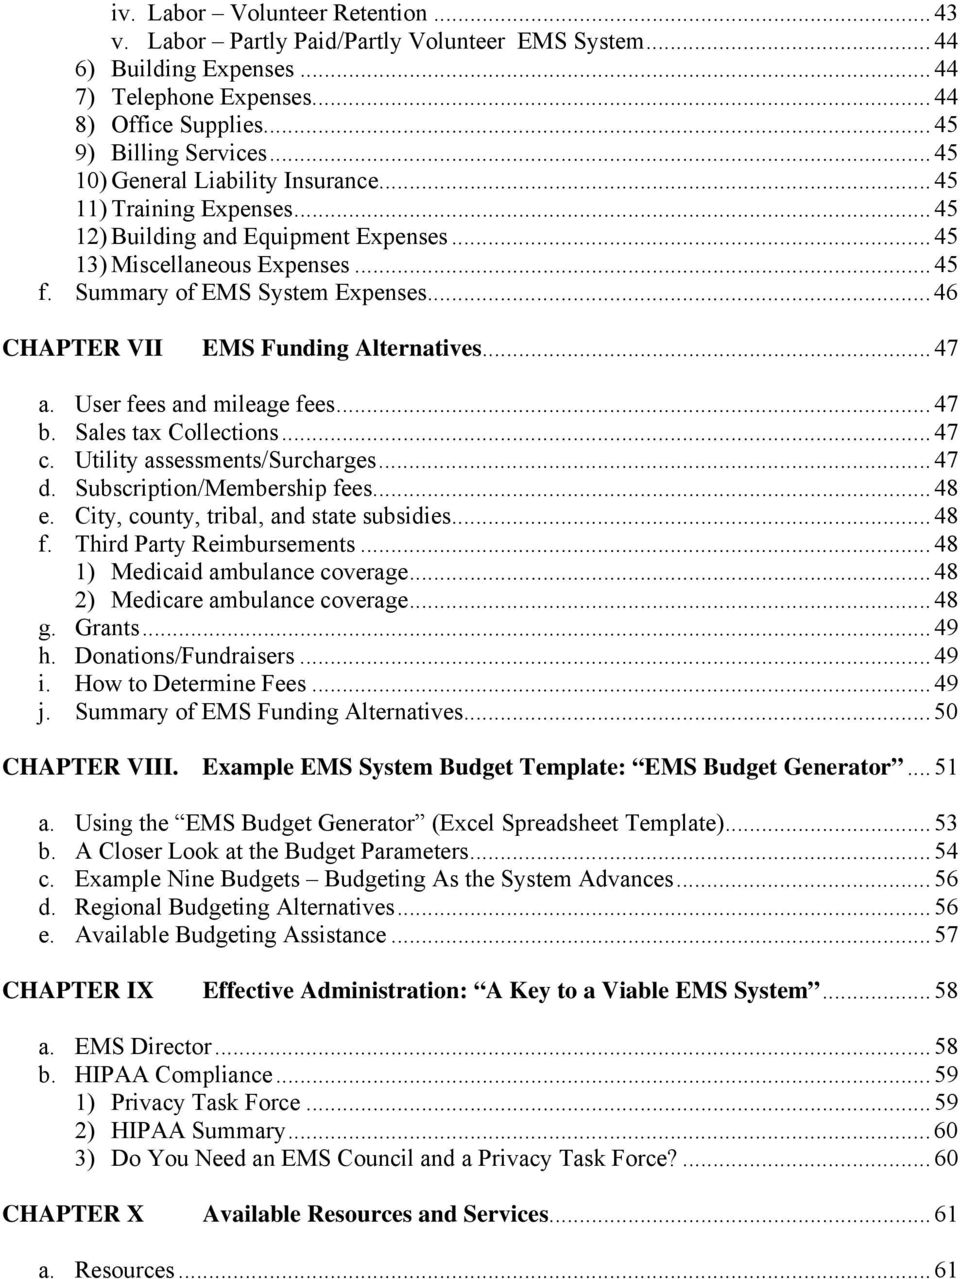 .. 46 CHAPTER VII EMS Funding Alternatives... 47 a. User fees and mileage fees... 47 b. Sales tax Collections... 47 c. Utility assessments/surcharges... 47 d. Subscription/Membership fees... 48 e.